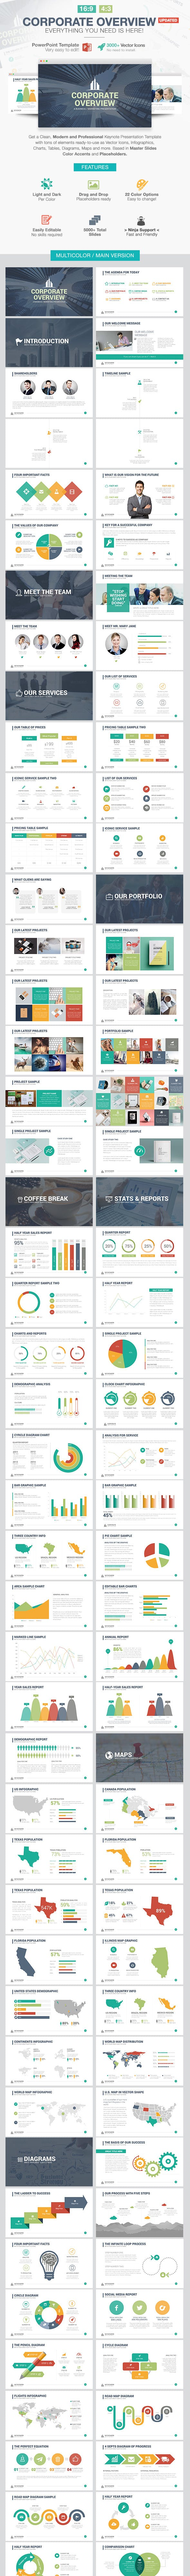 corporate overview powerpoint template by louistwelve design